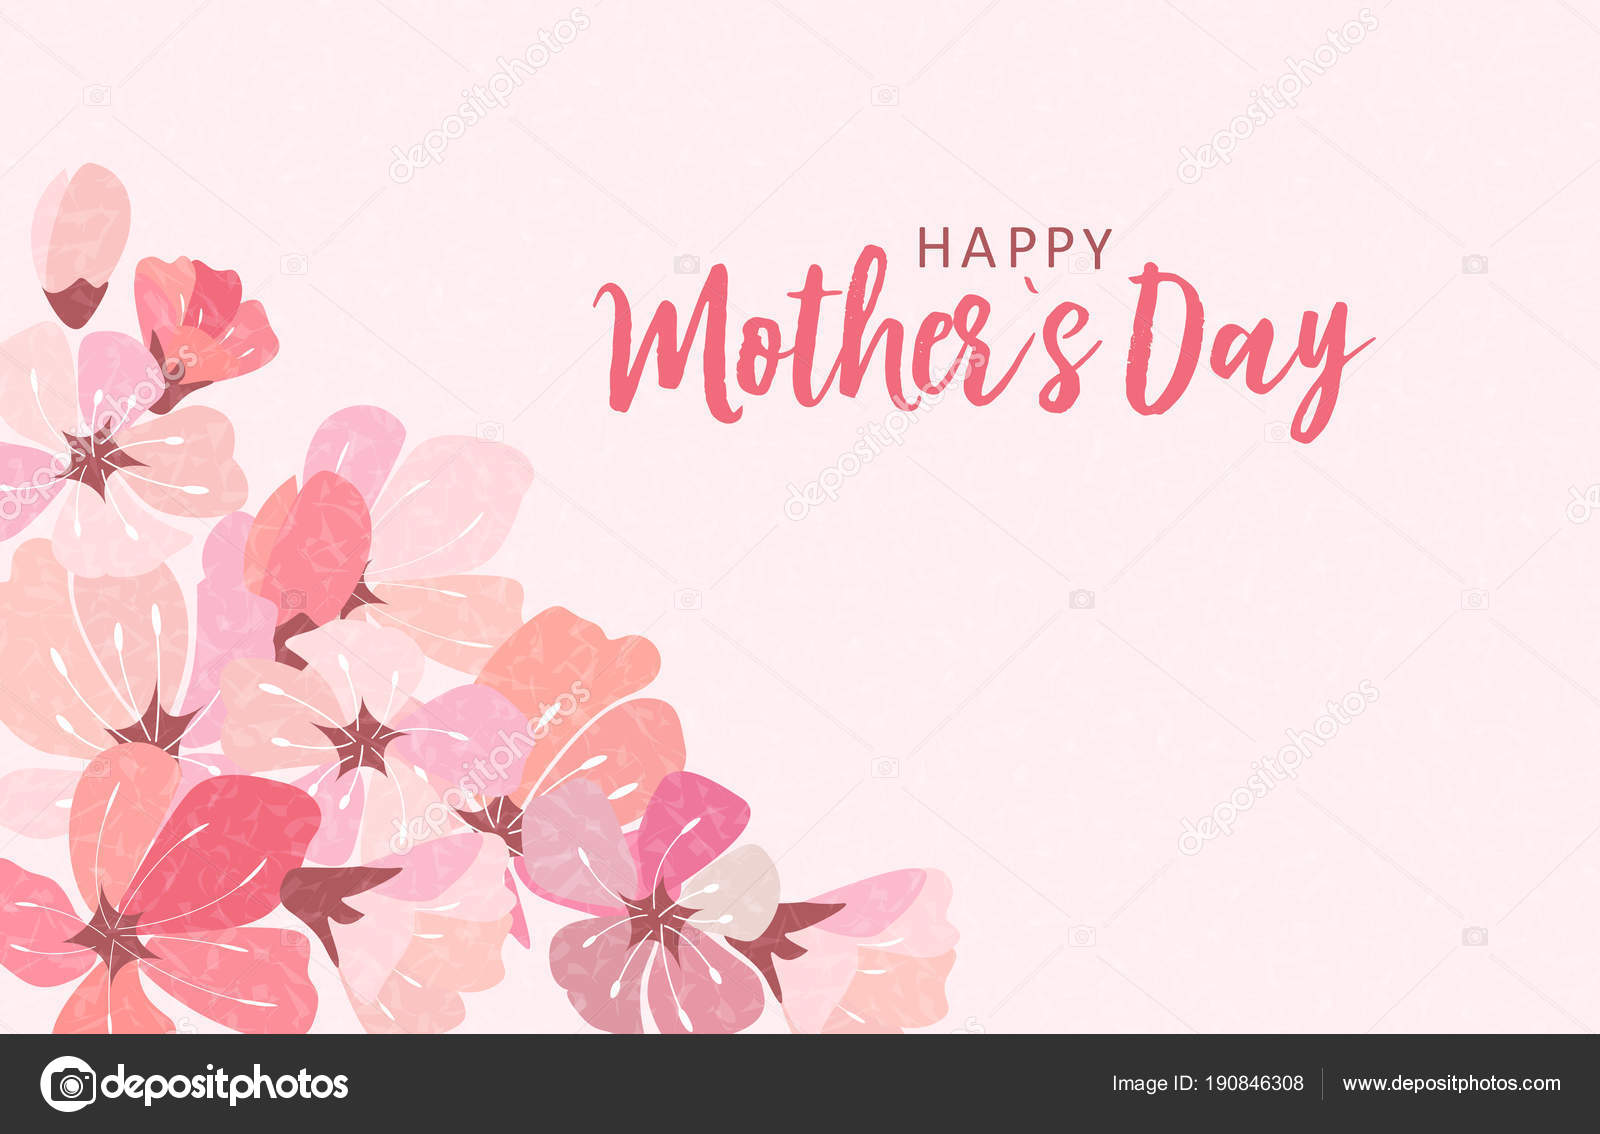 Happy mothers day greeting card with background vector happy mothers day greeting card with background vector illustration stock vector kristyandbryce Image collections